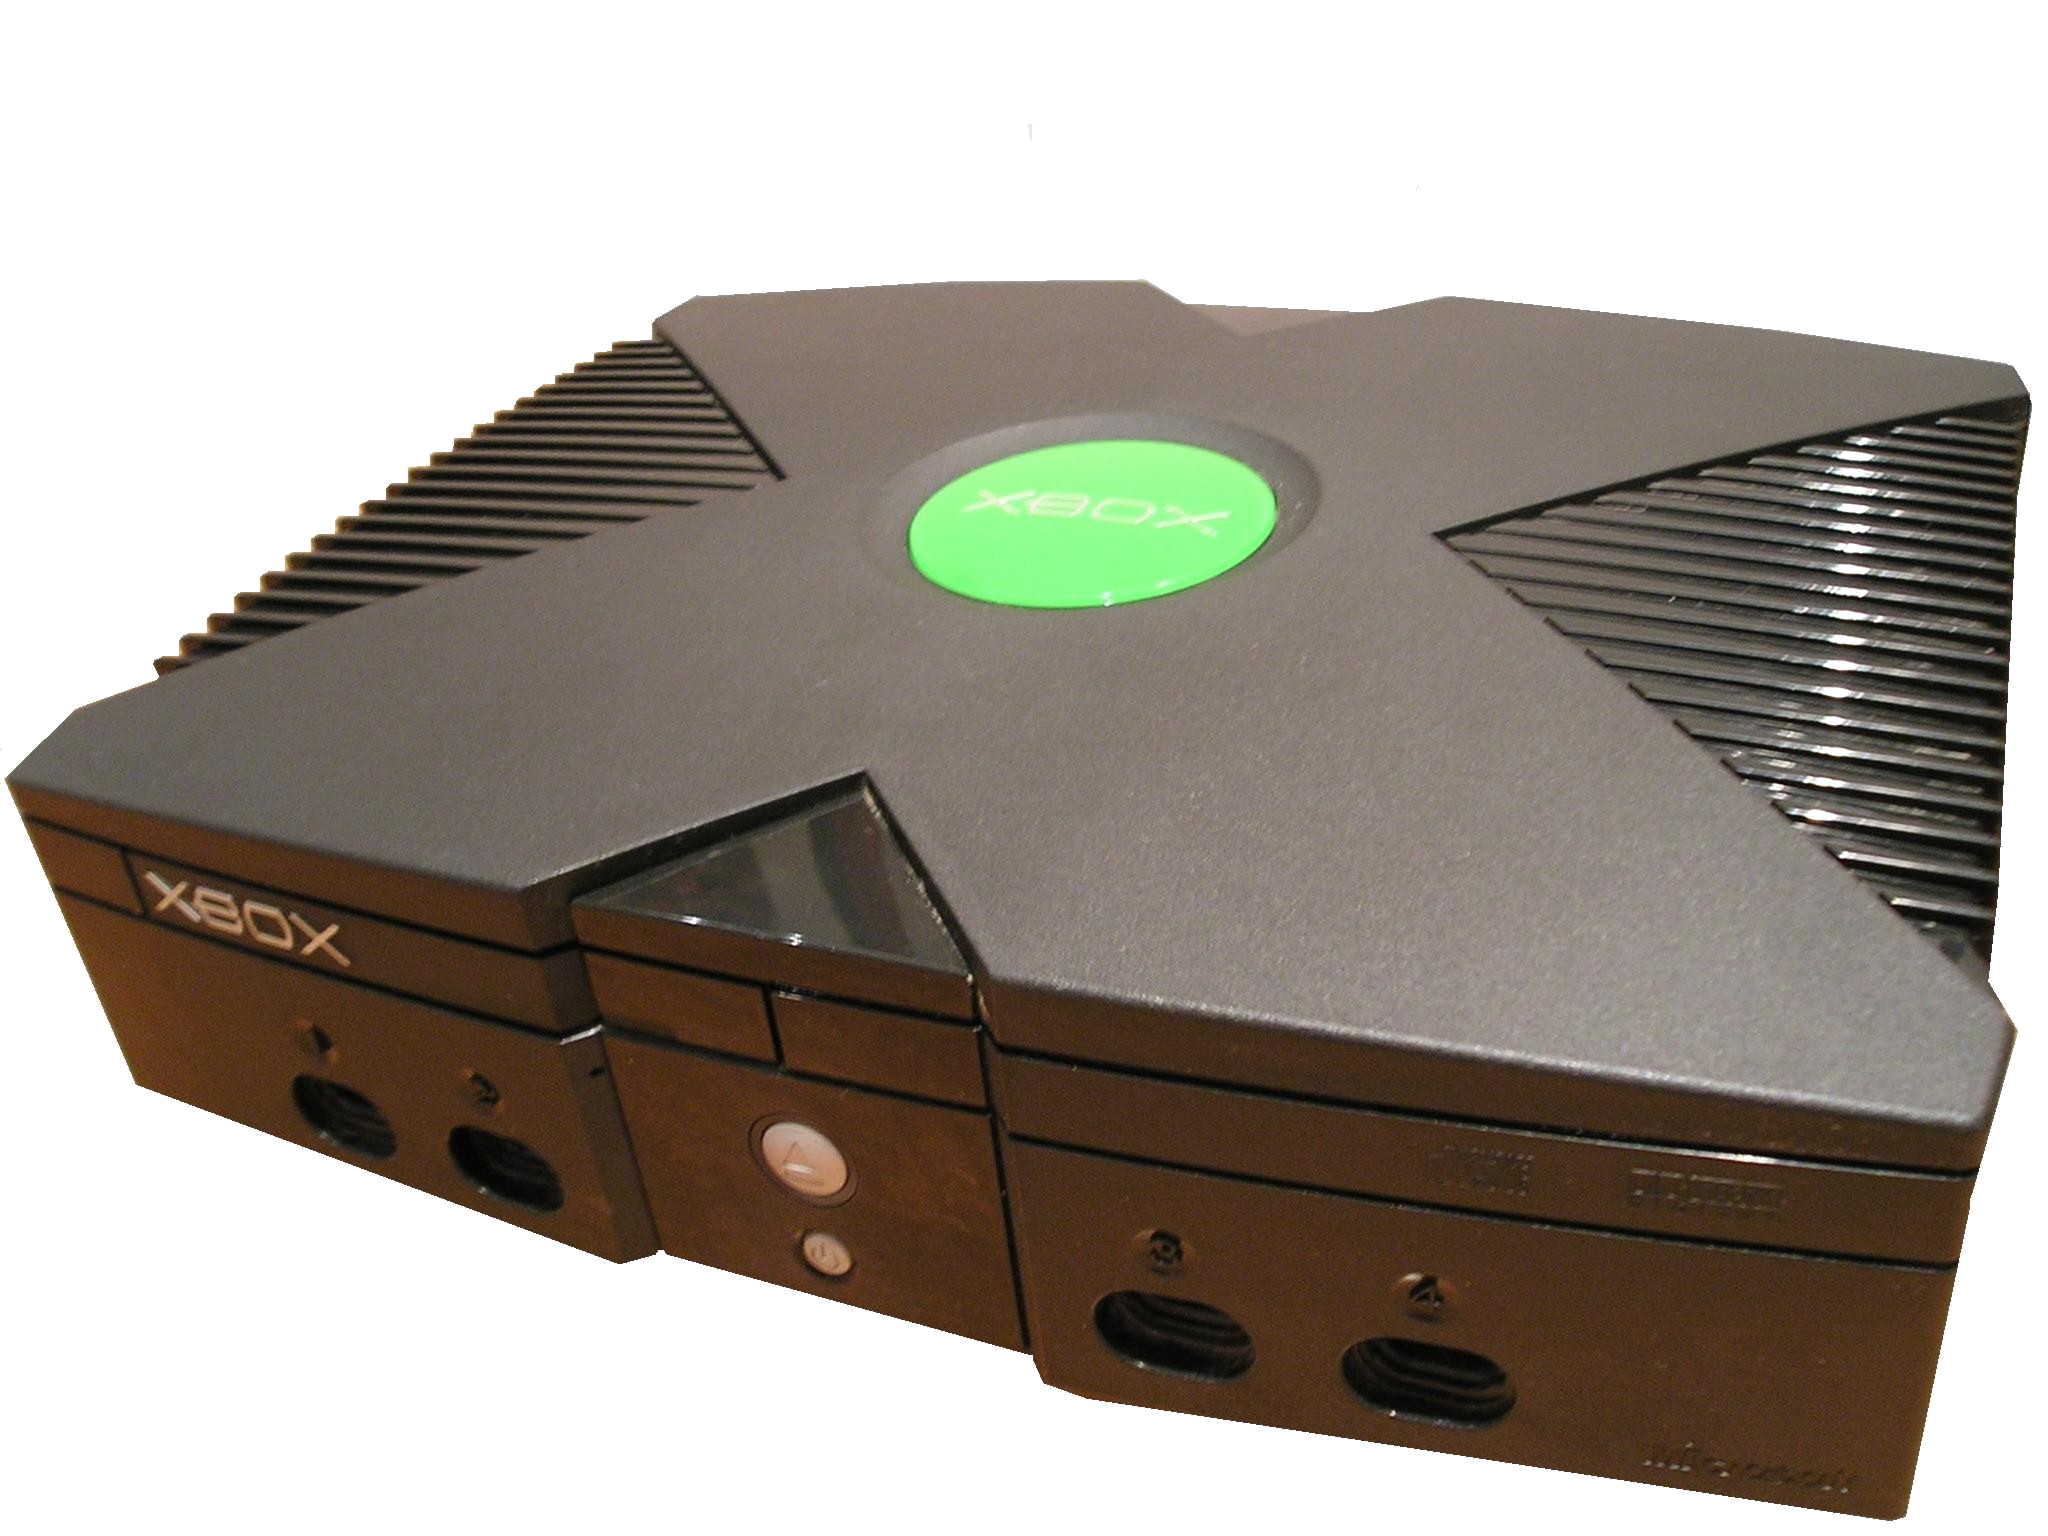 File:Xbox 1.png.